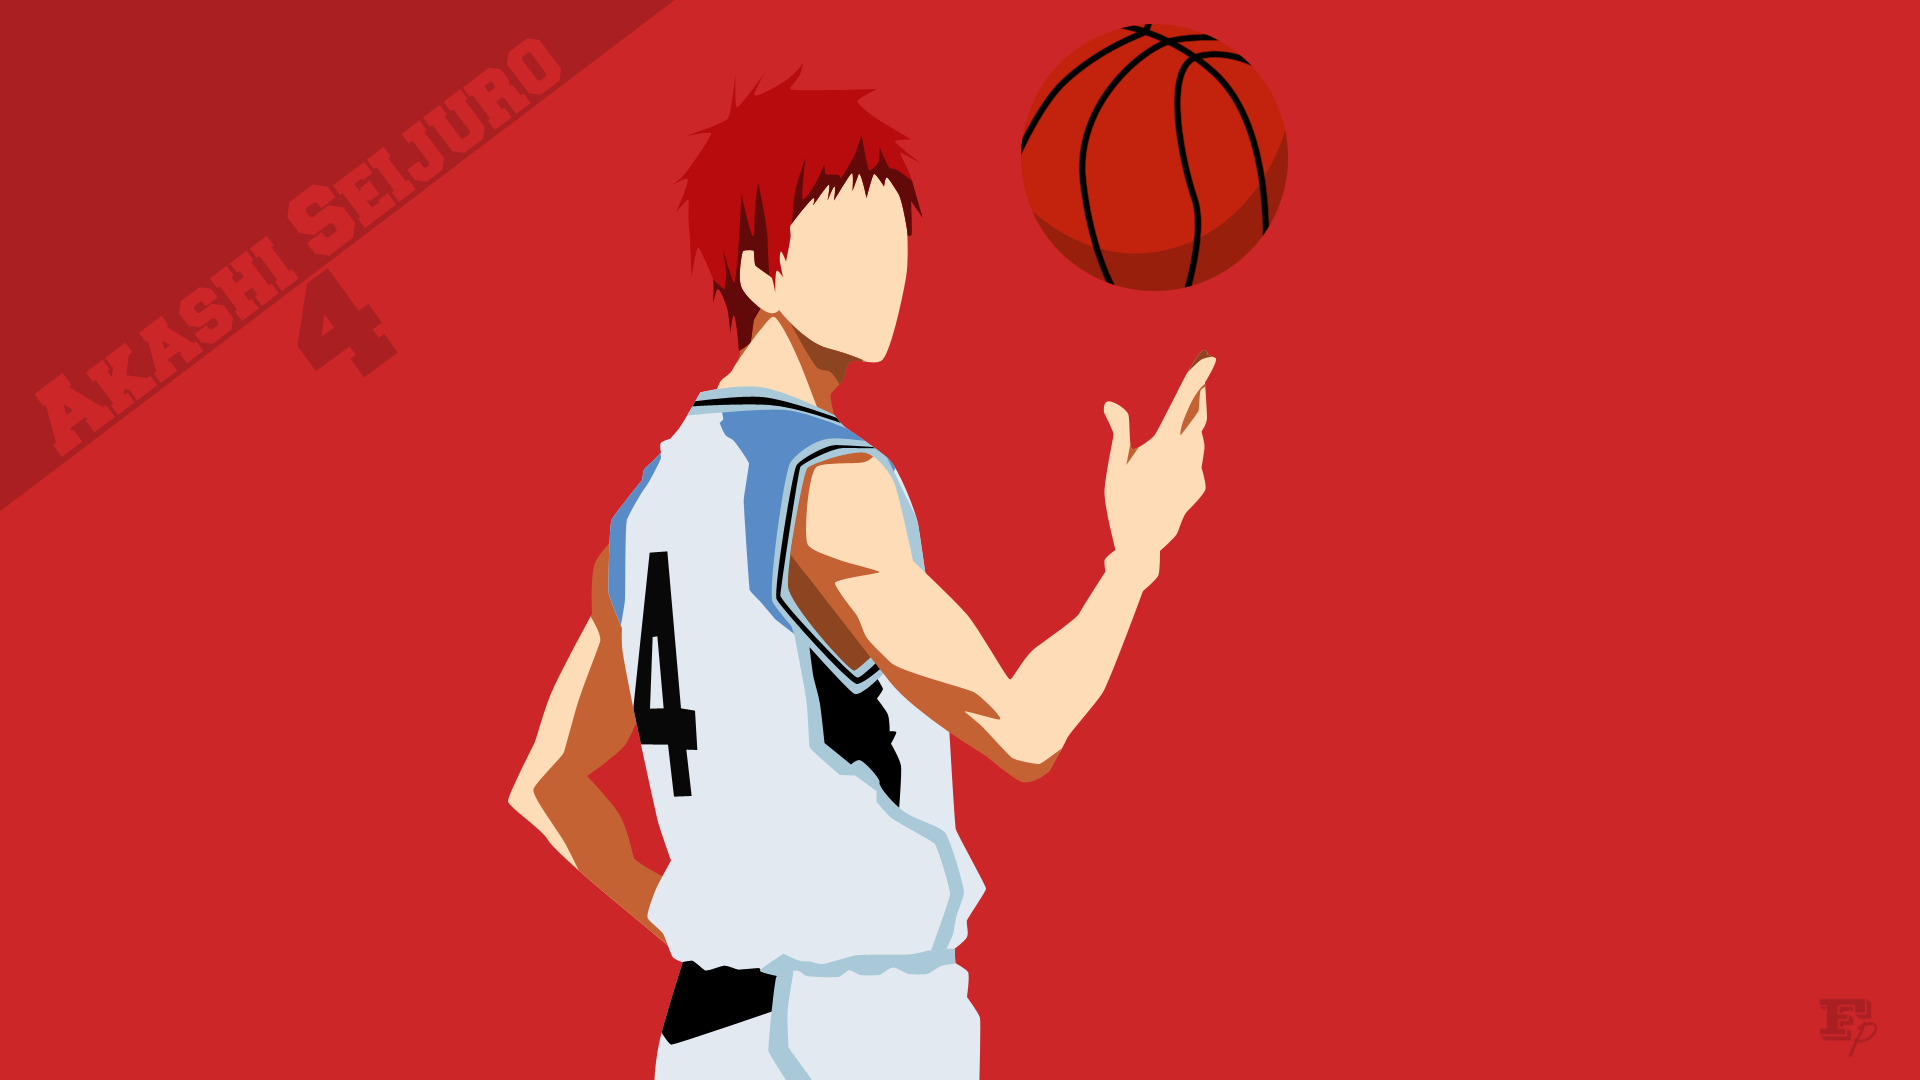 Kuroko no Basuke Akashi Seijuro HD 4K Wallpaper for PC by